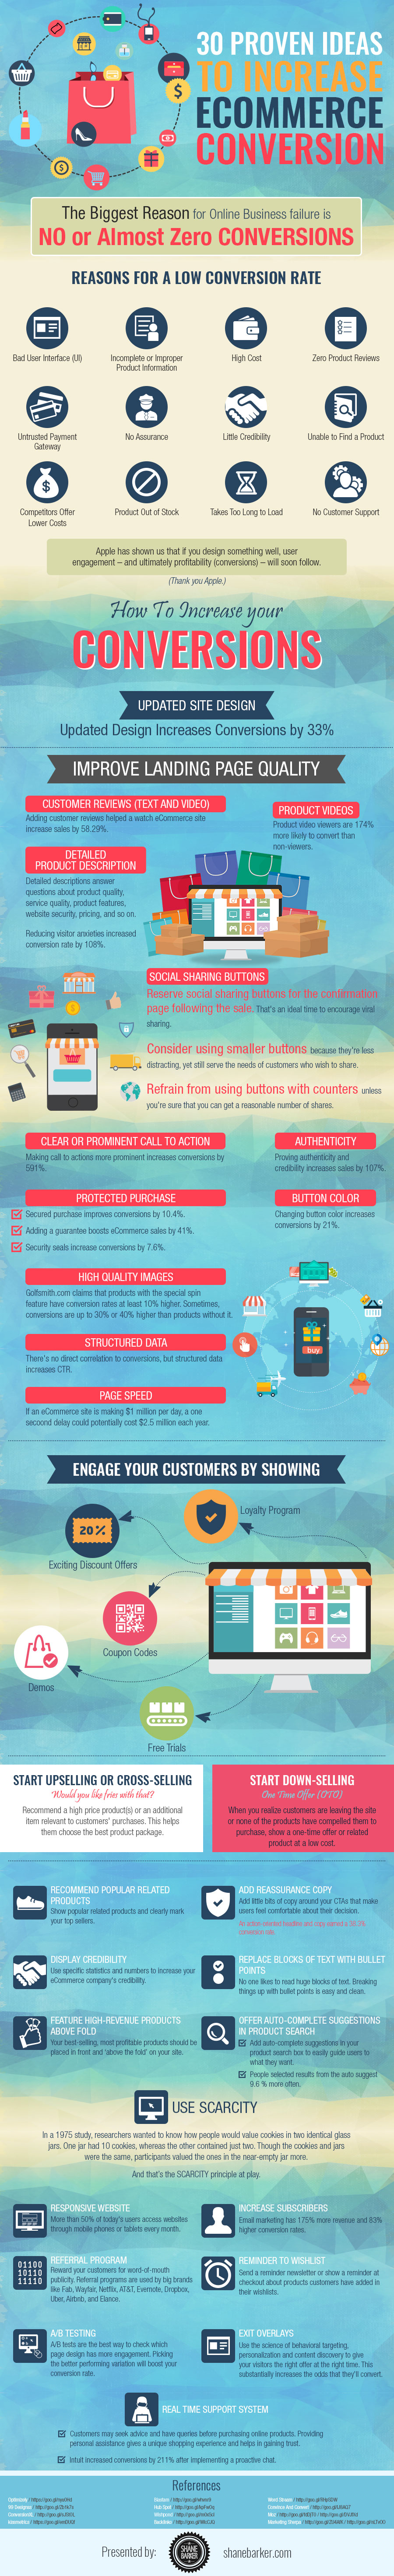 30 Proven Ideas to Increase eCommerce Conversions [Infographic]. Image 4